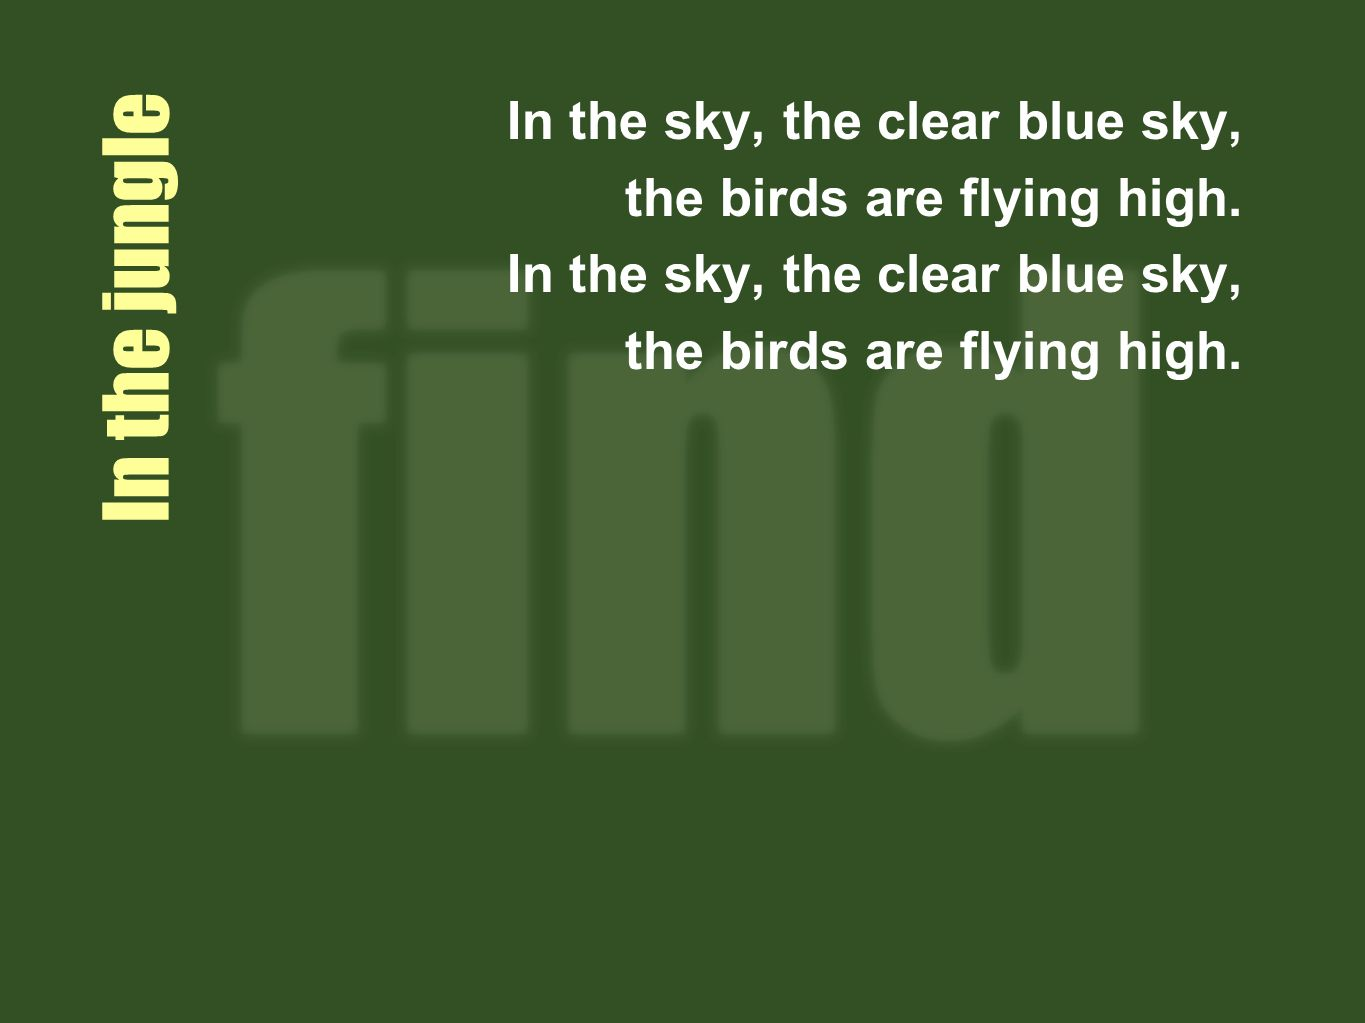 In the jungle In the sky, the clear blue sky, the birds are flying high.